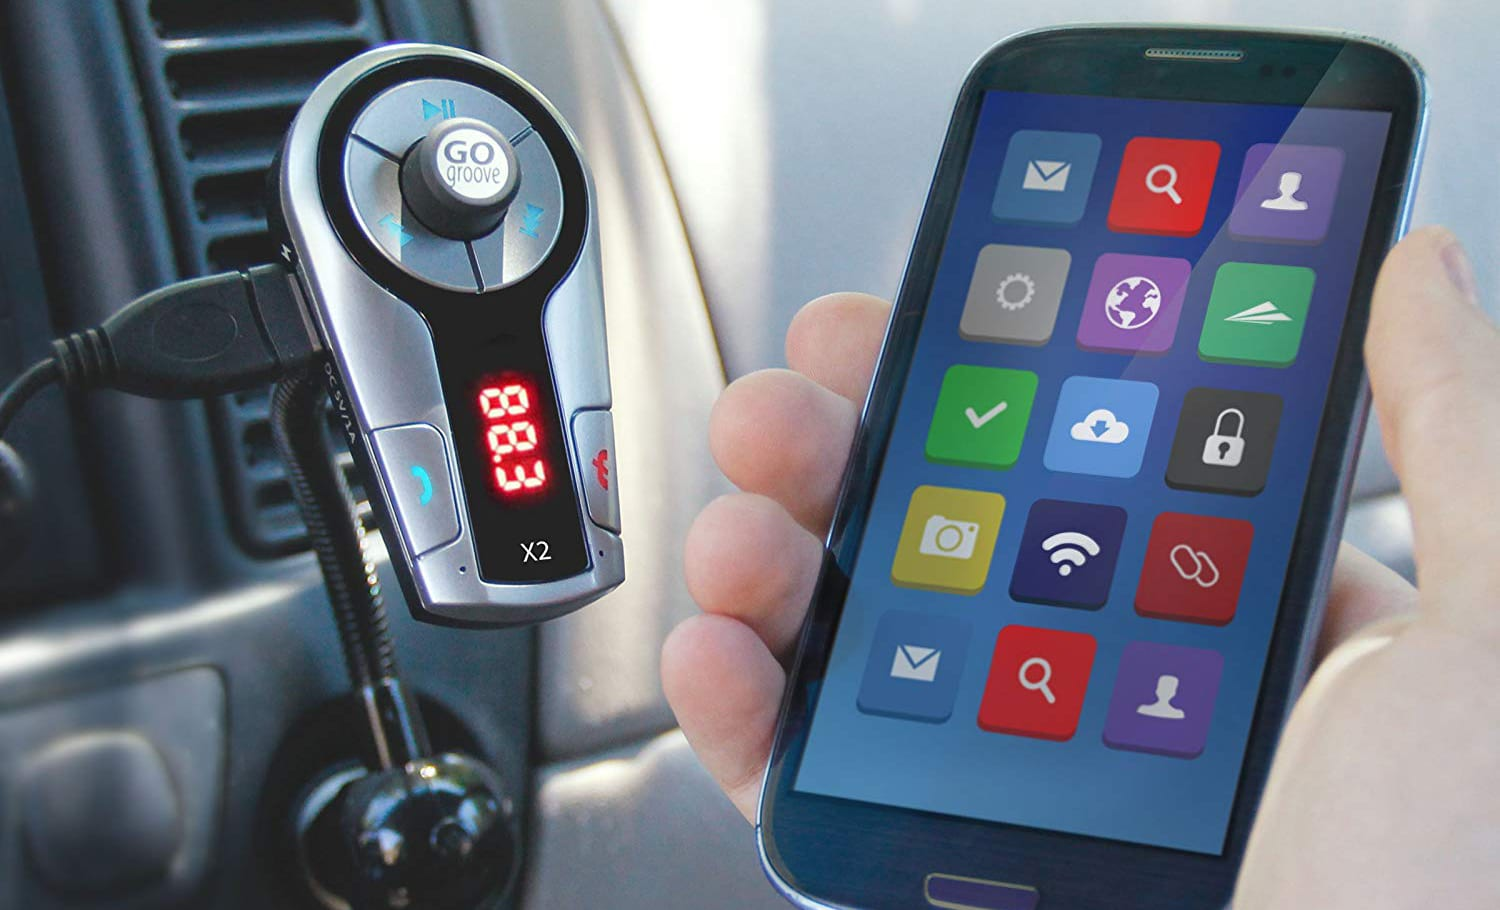 Audio Playback and USB Charging Tablets GOgroove FlexSMART X3 Bluetooth FM Transmitter Car Kit with Hands-free Calling Android MP3 Players and more Bluetooth Devices Works with Apple iPhone